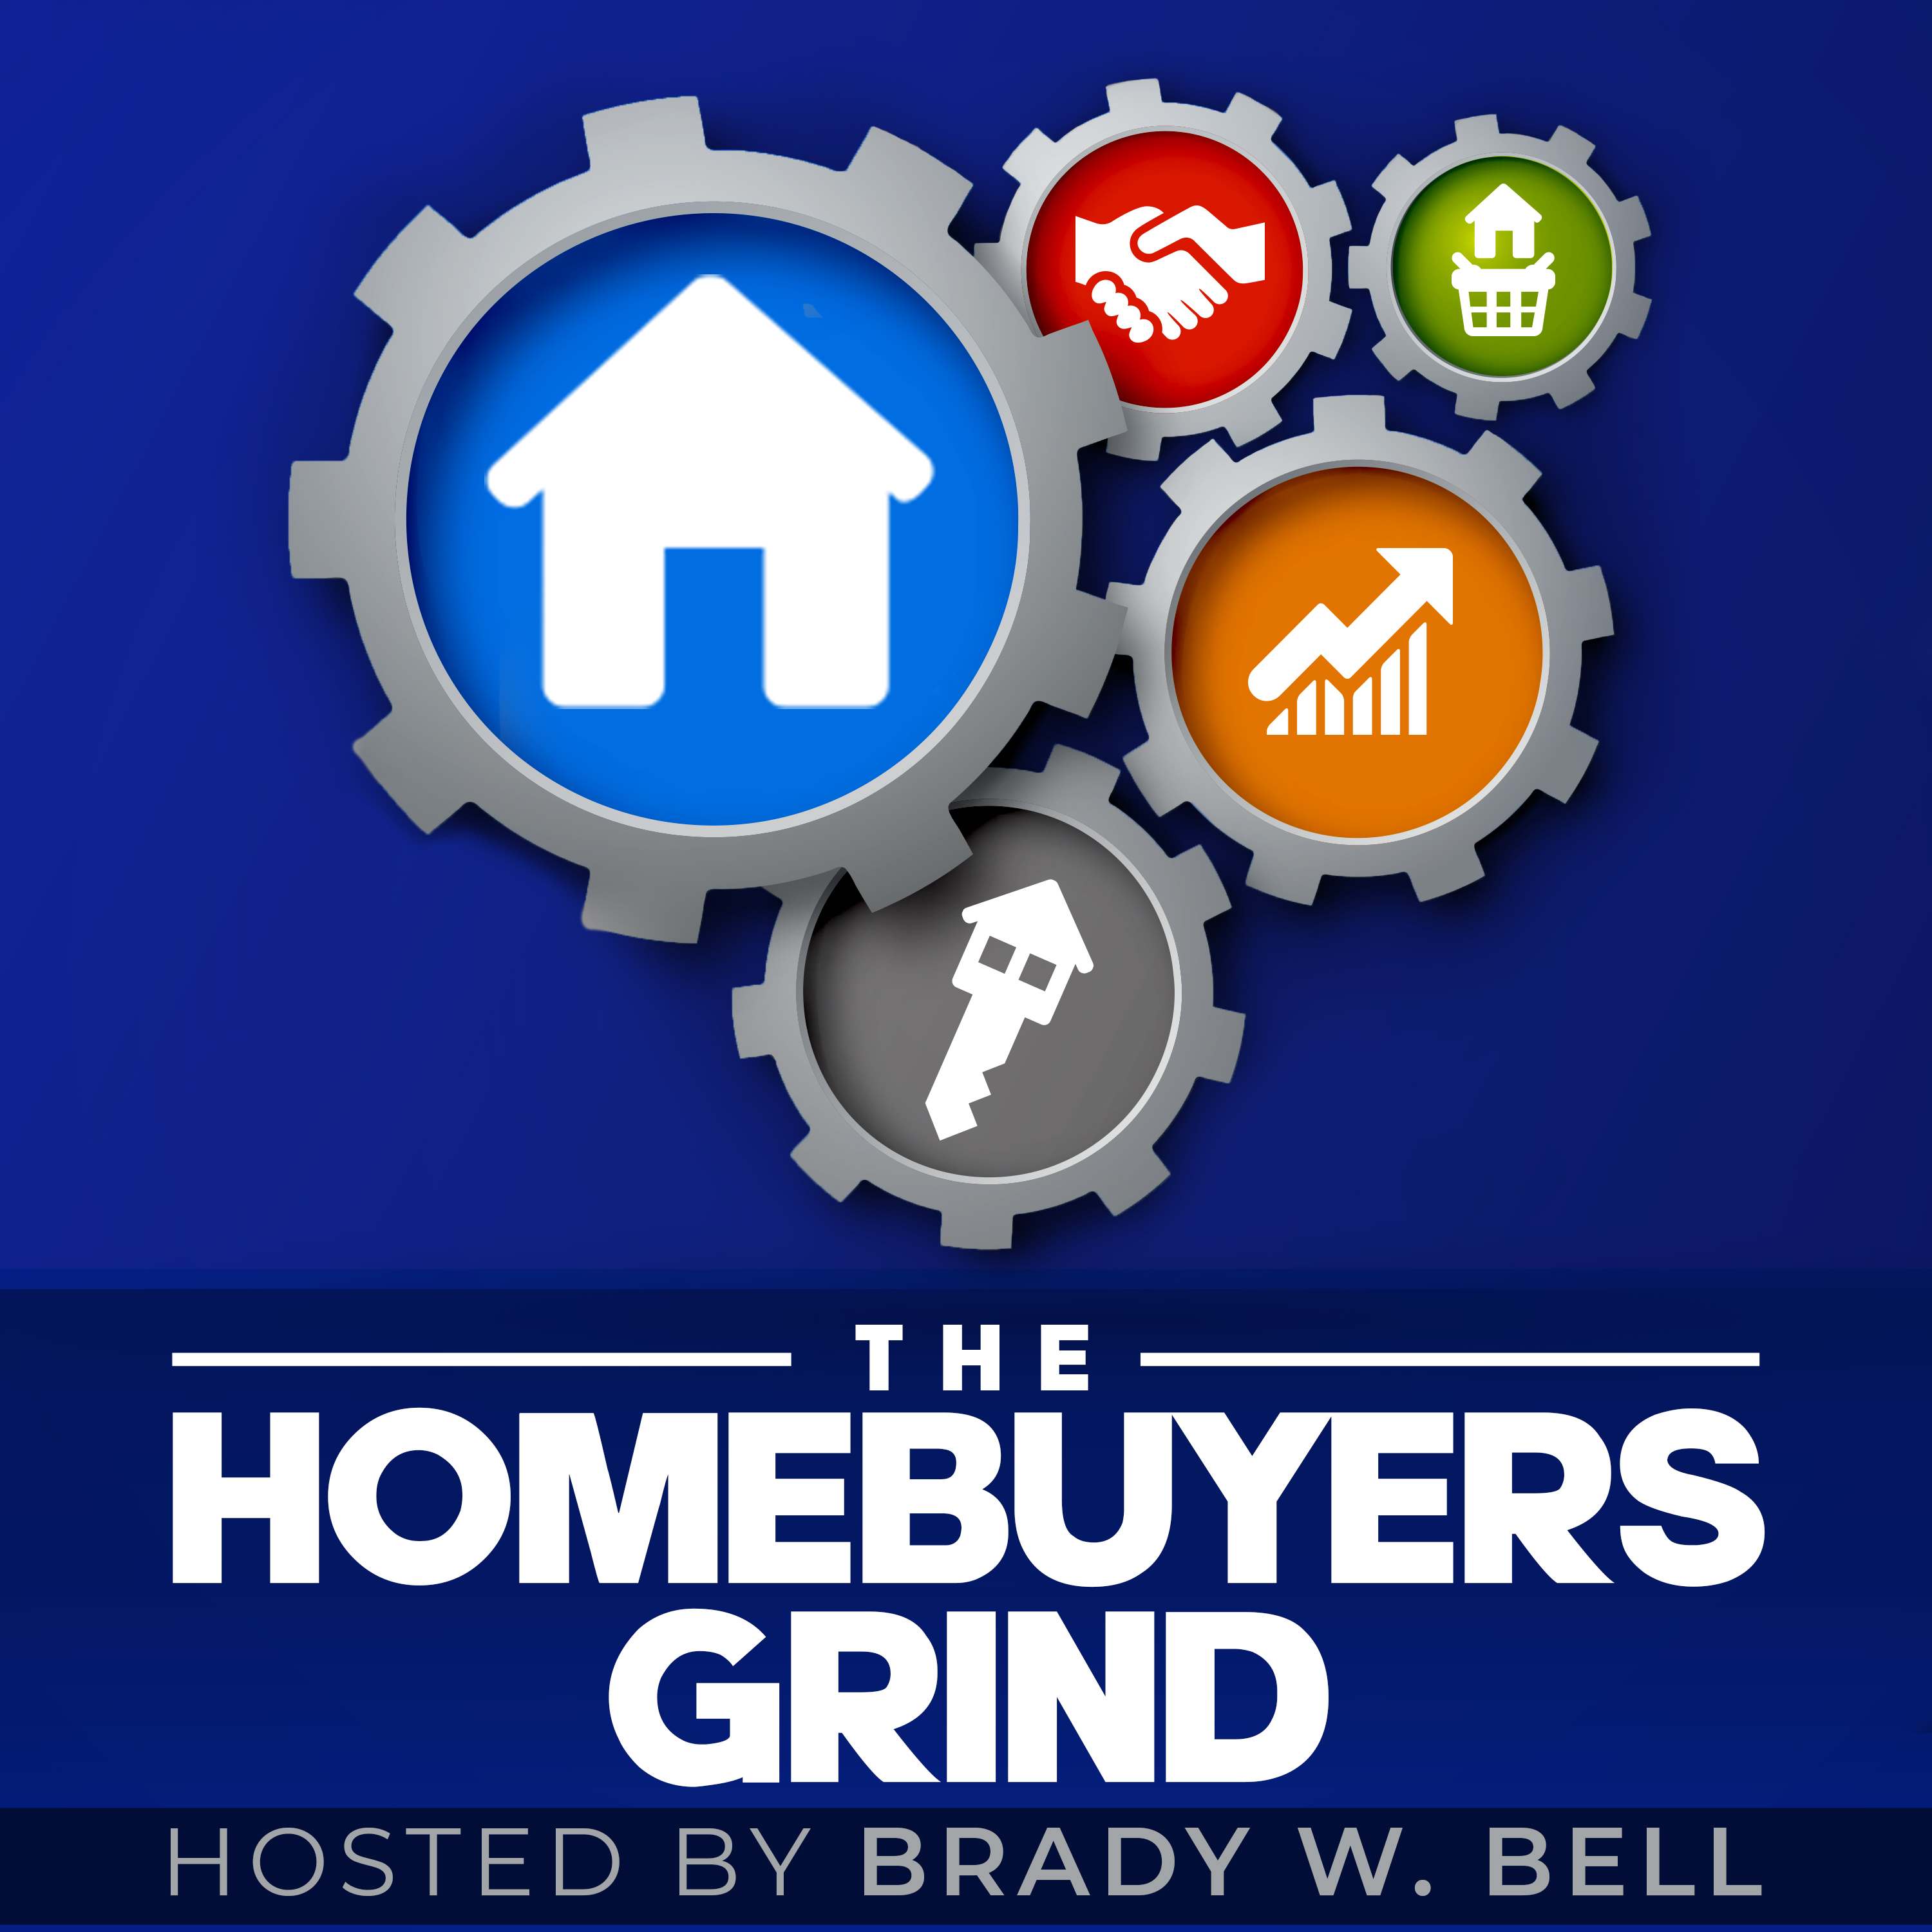 The homebuyers grind podcast cover art